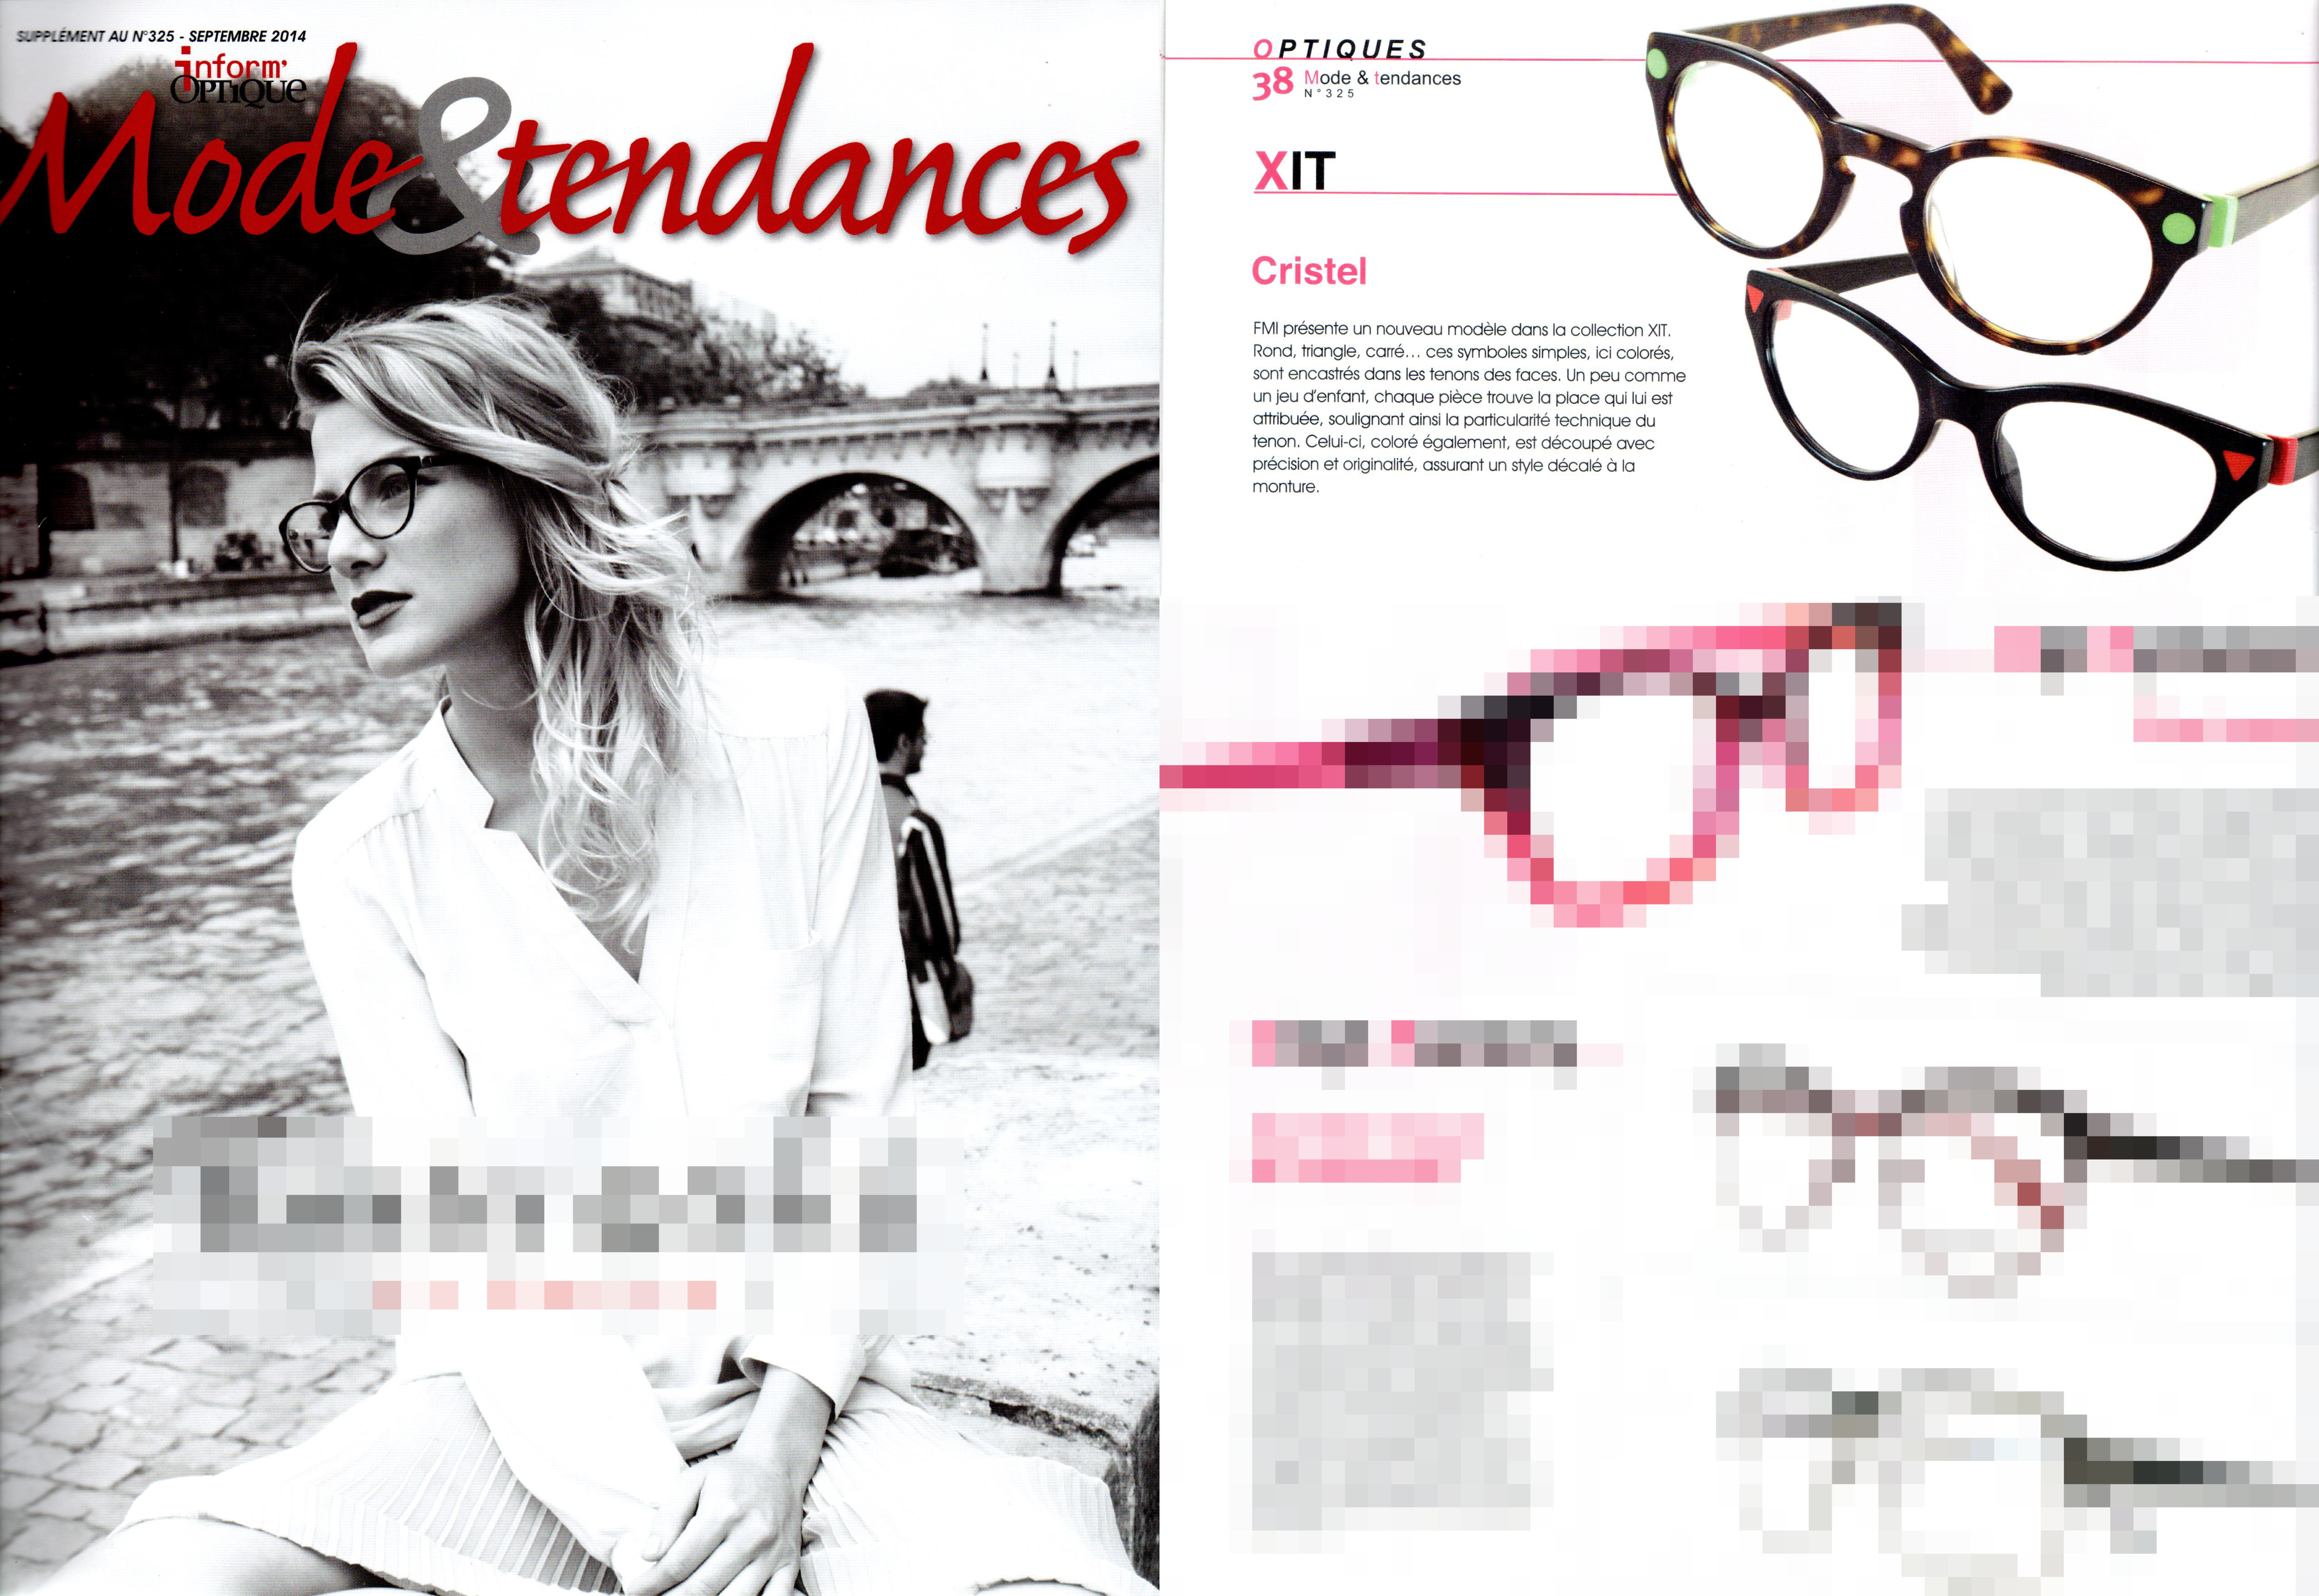 inform'optic-modes et tendances. Septembre 2014